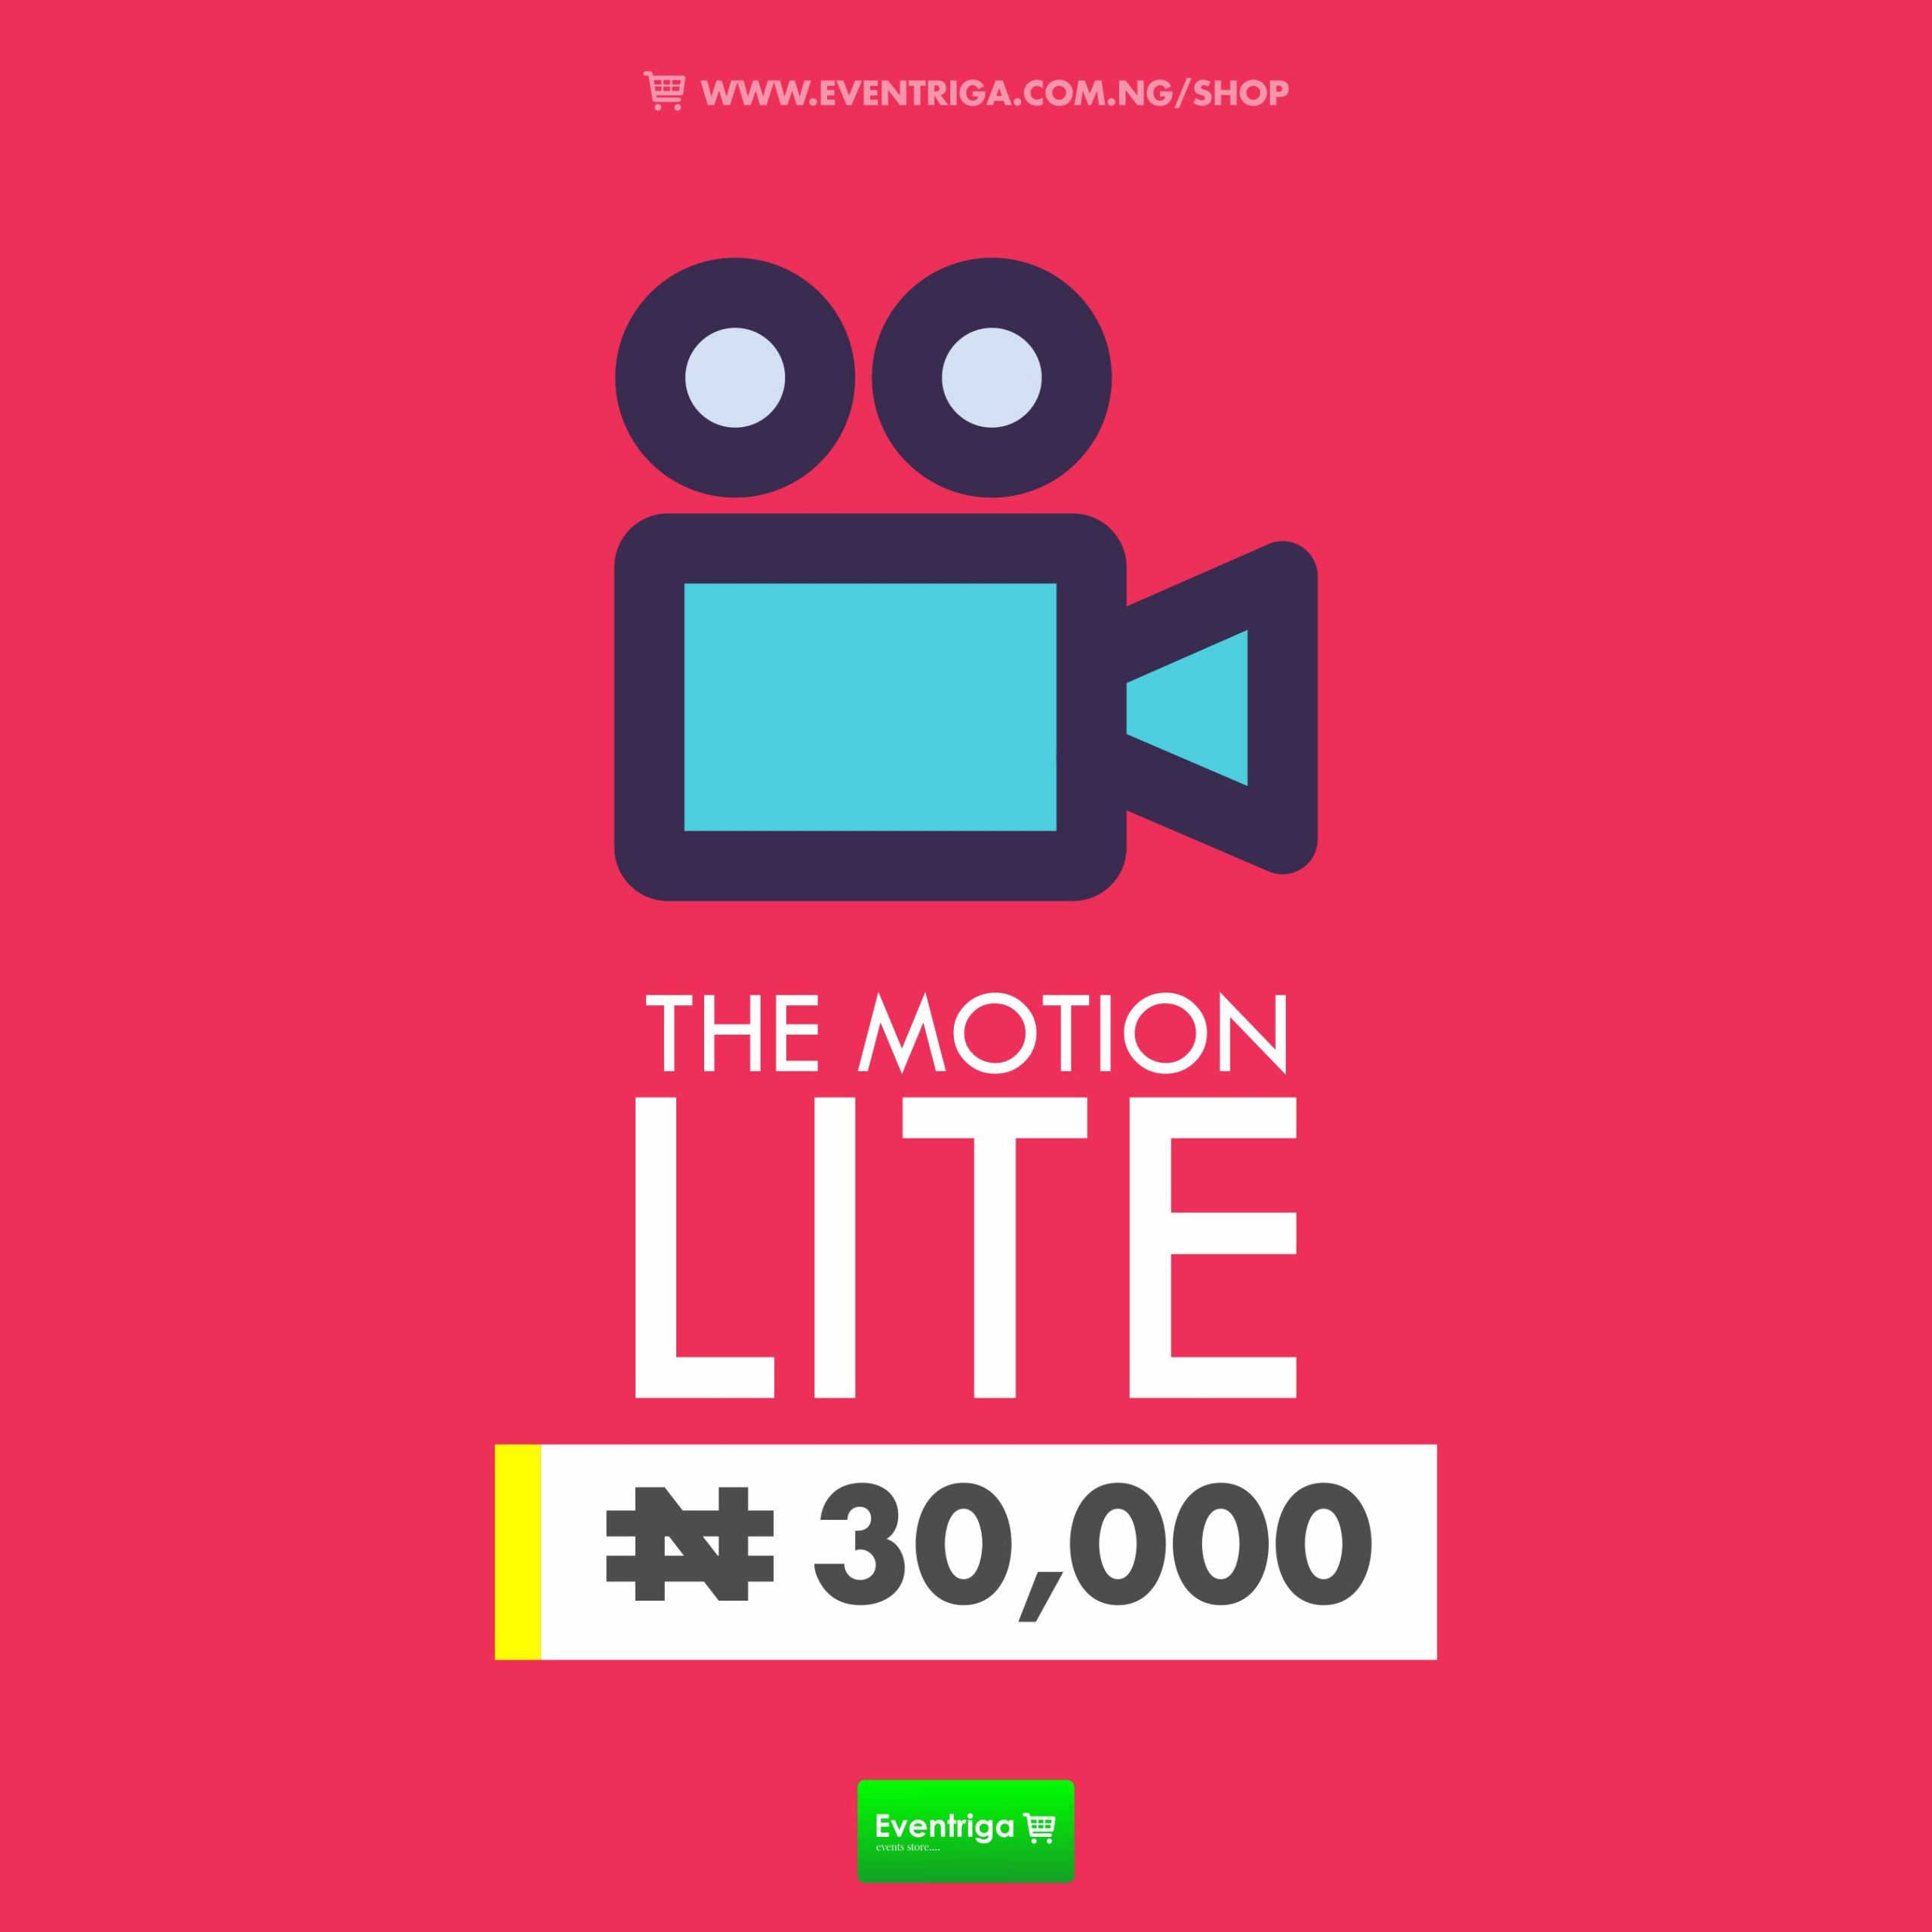 The Motion Lite